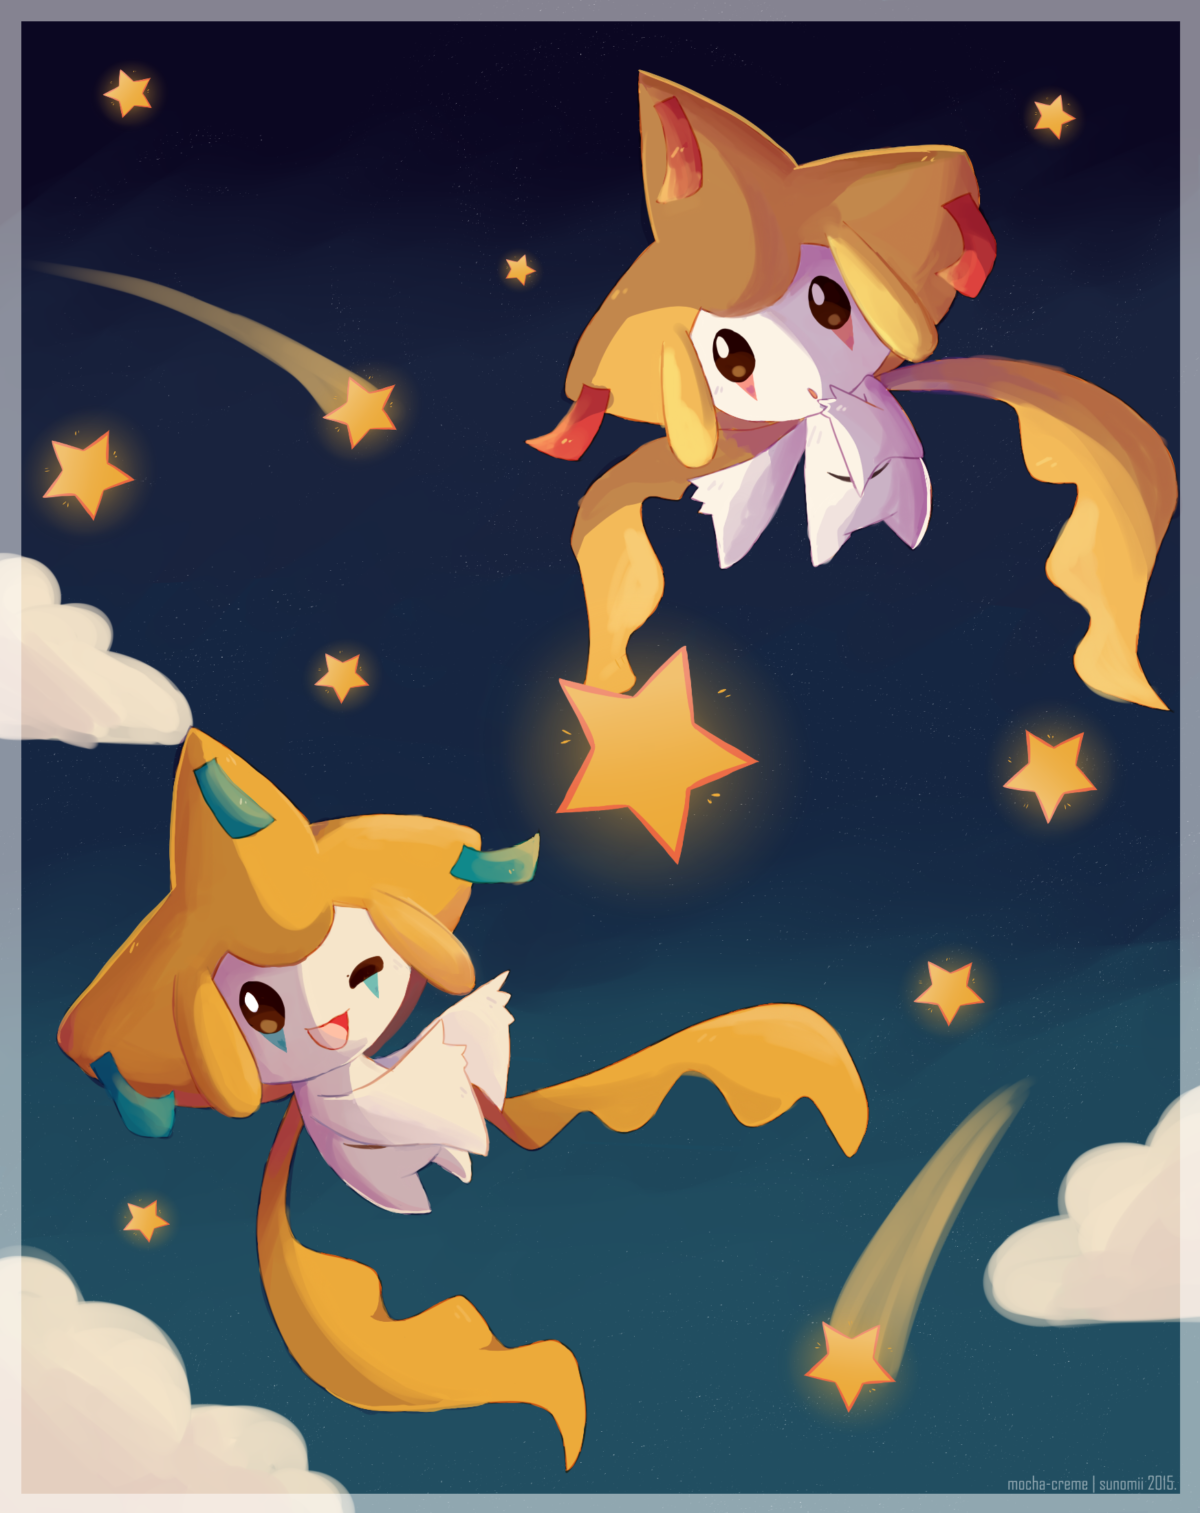 Jirachi HD Wallpapers 20+ – Page 3 of 3 – ondss.com